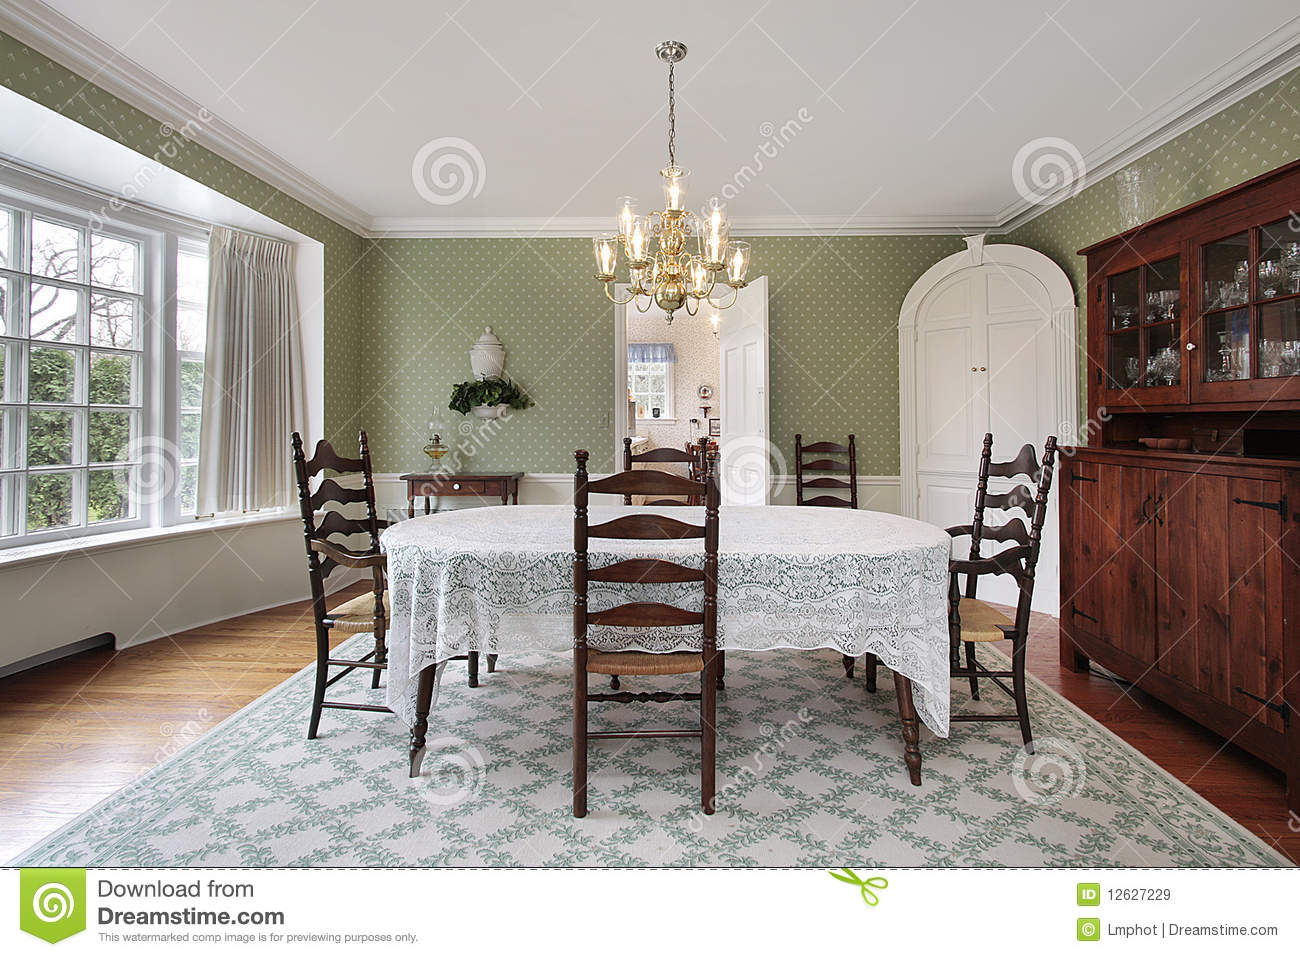 Dining room with curved bay window stock image for Curved bay window